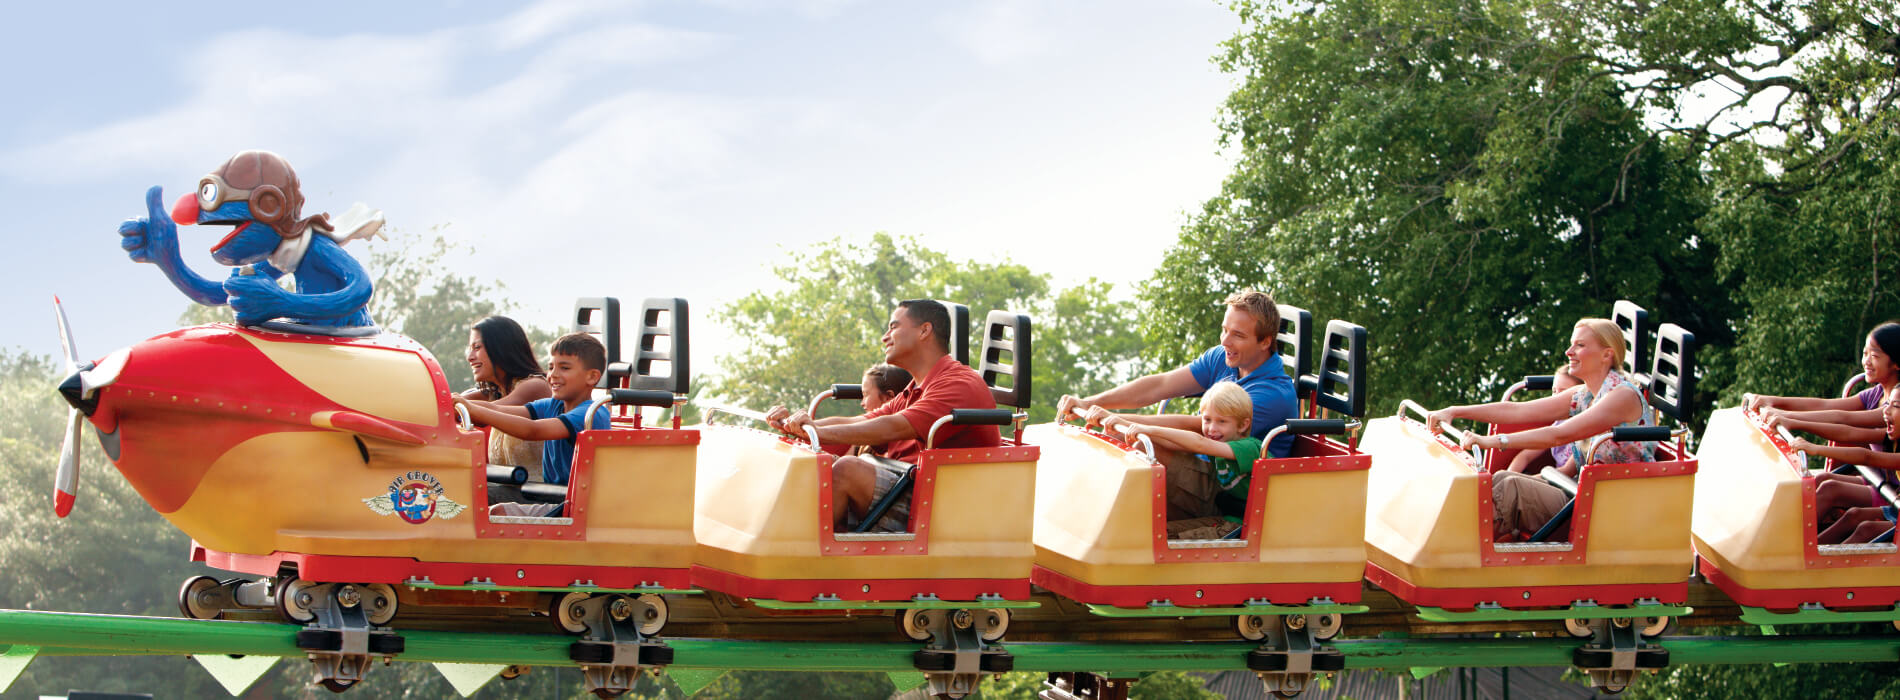 Kids riding a yellow and red roller coaster with adults called Air Grover at Busch Gardens Tampa Bay animal theme park, located in Florida